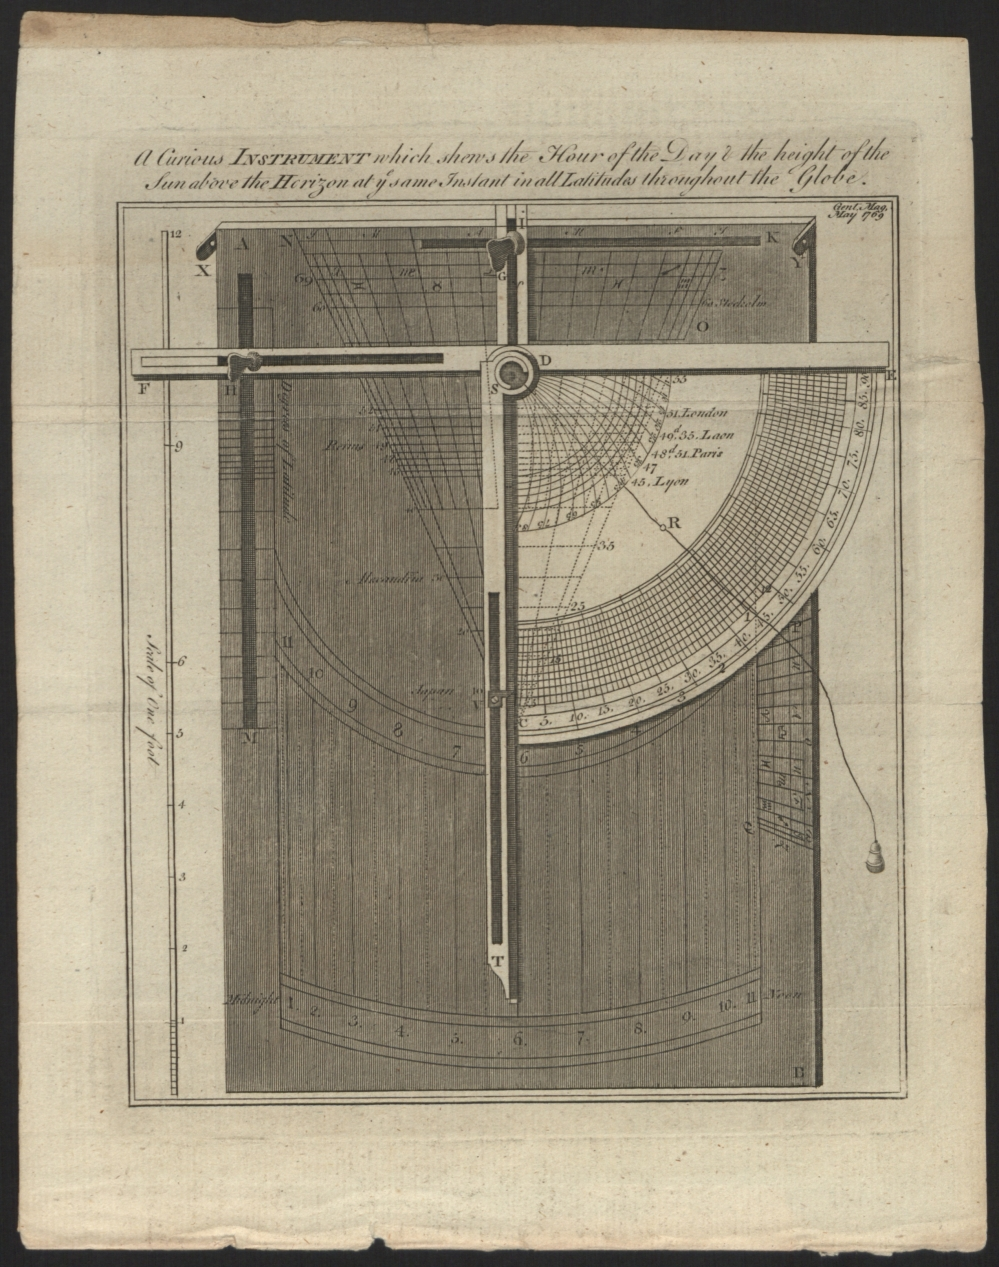 preview image for Print (Engraving) A curious Instrument which shews the Hour of the Day in the height of the Sun above the Horizon at ye same Instant in all Latitudes throughout the Globe, from the Gentleman's Magazine, May 1769.